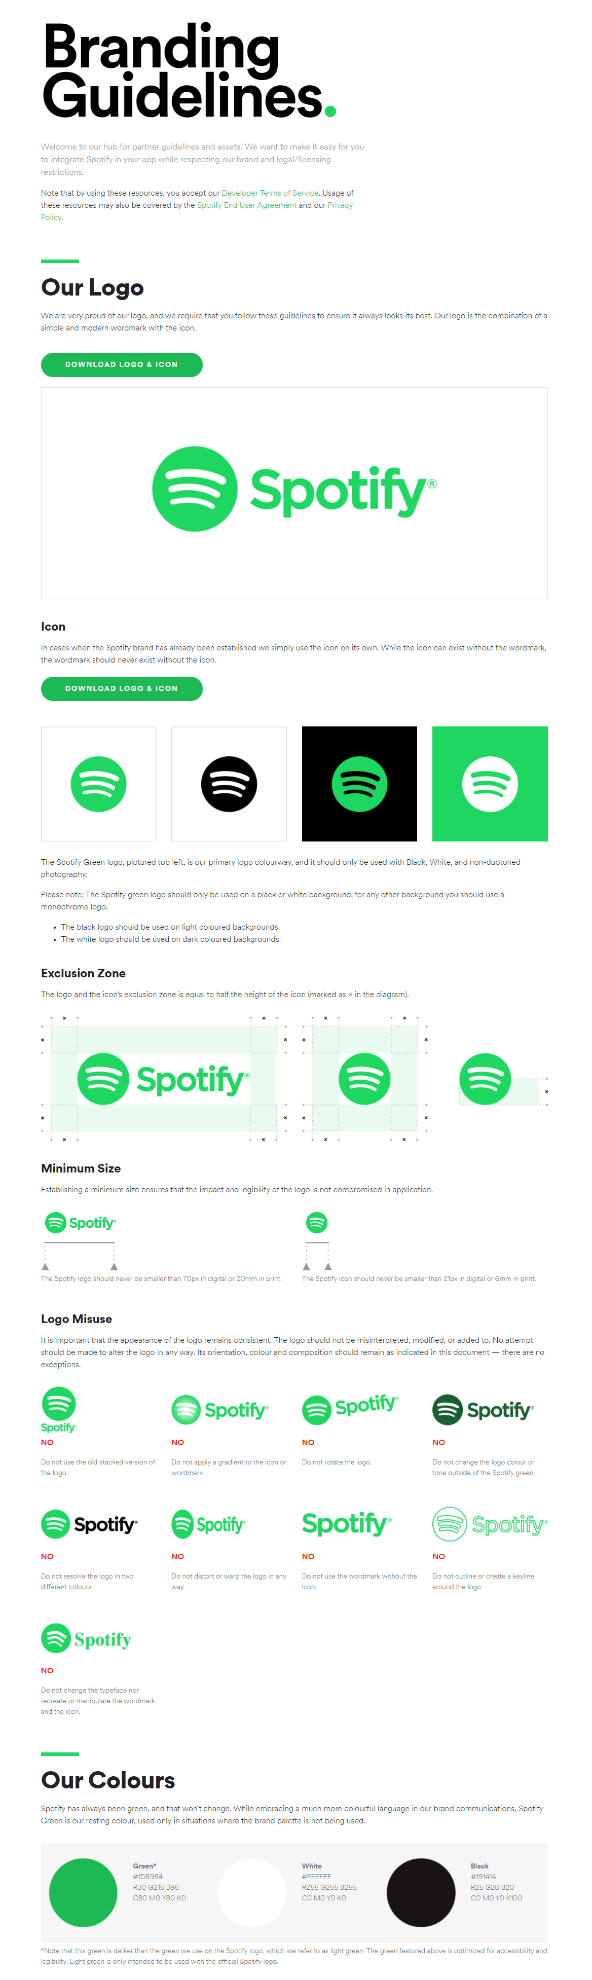 Infographic showing Spotify's branding guidelines including logo sizes and brand colors